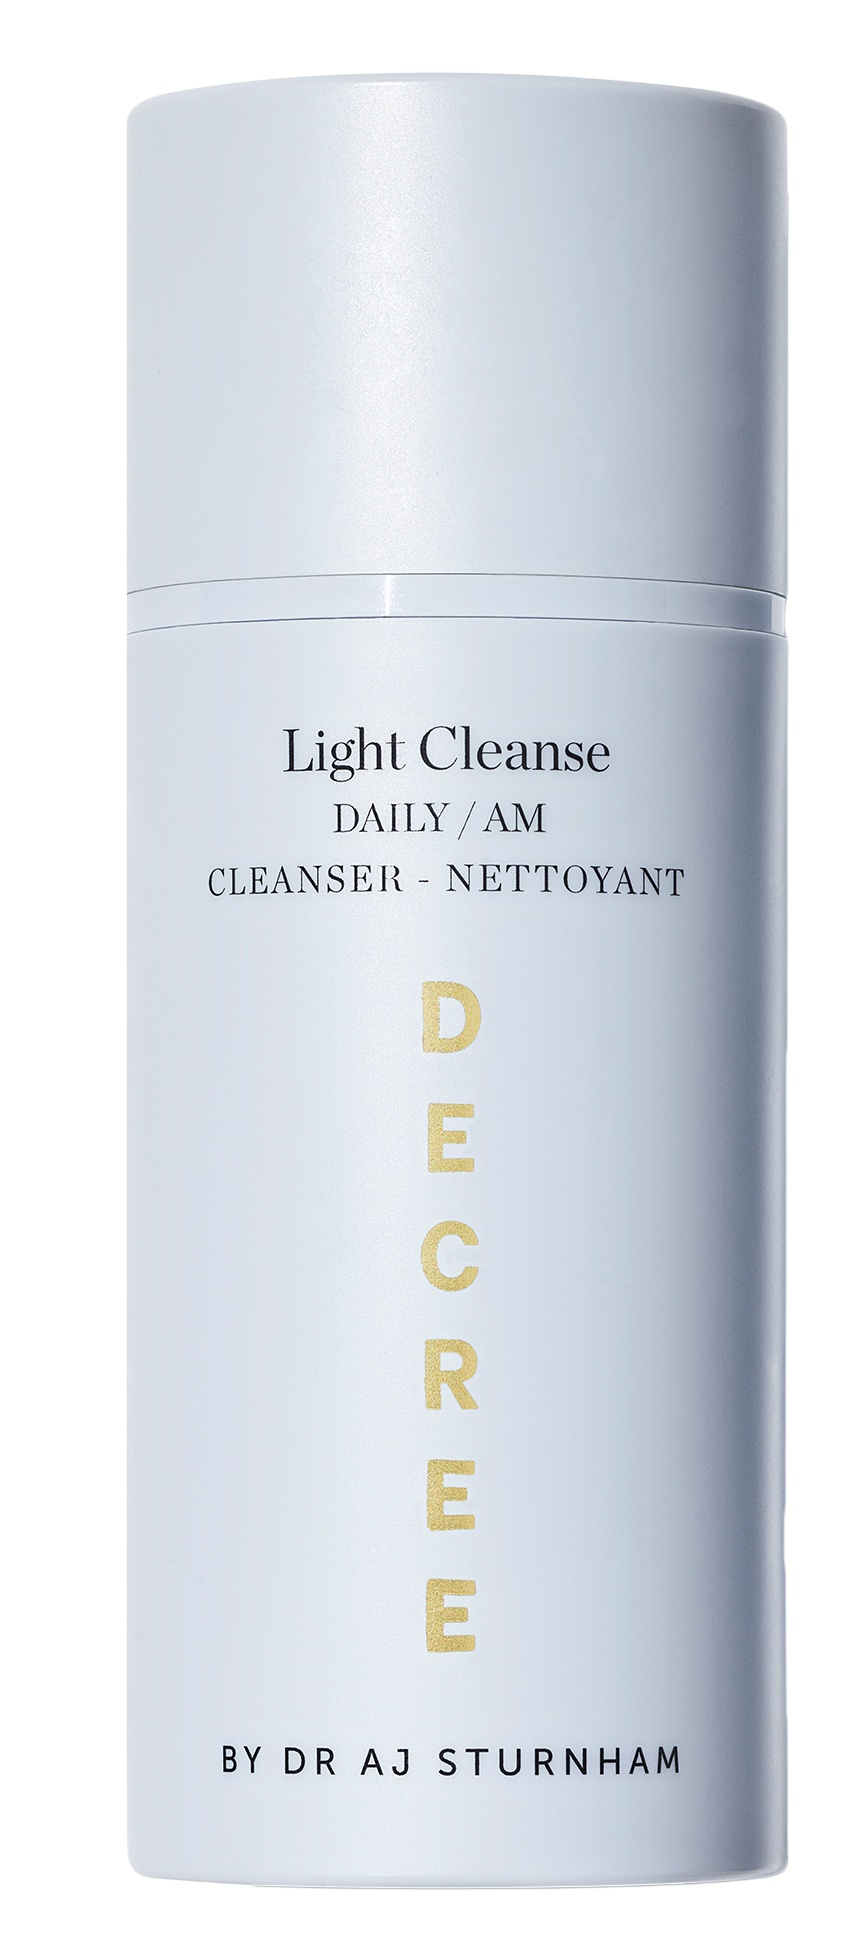 DECREE Light Cleanse